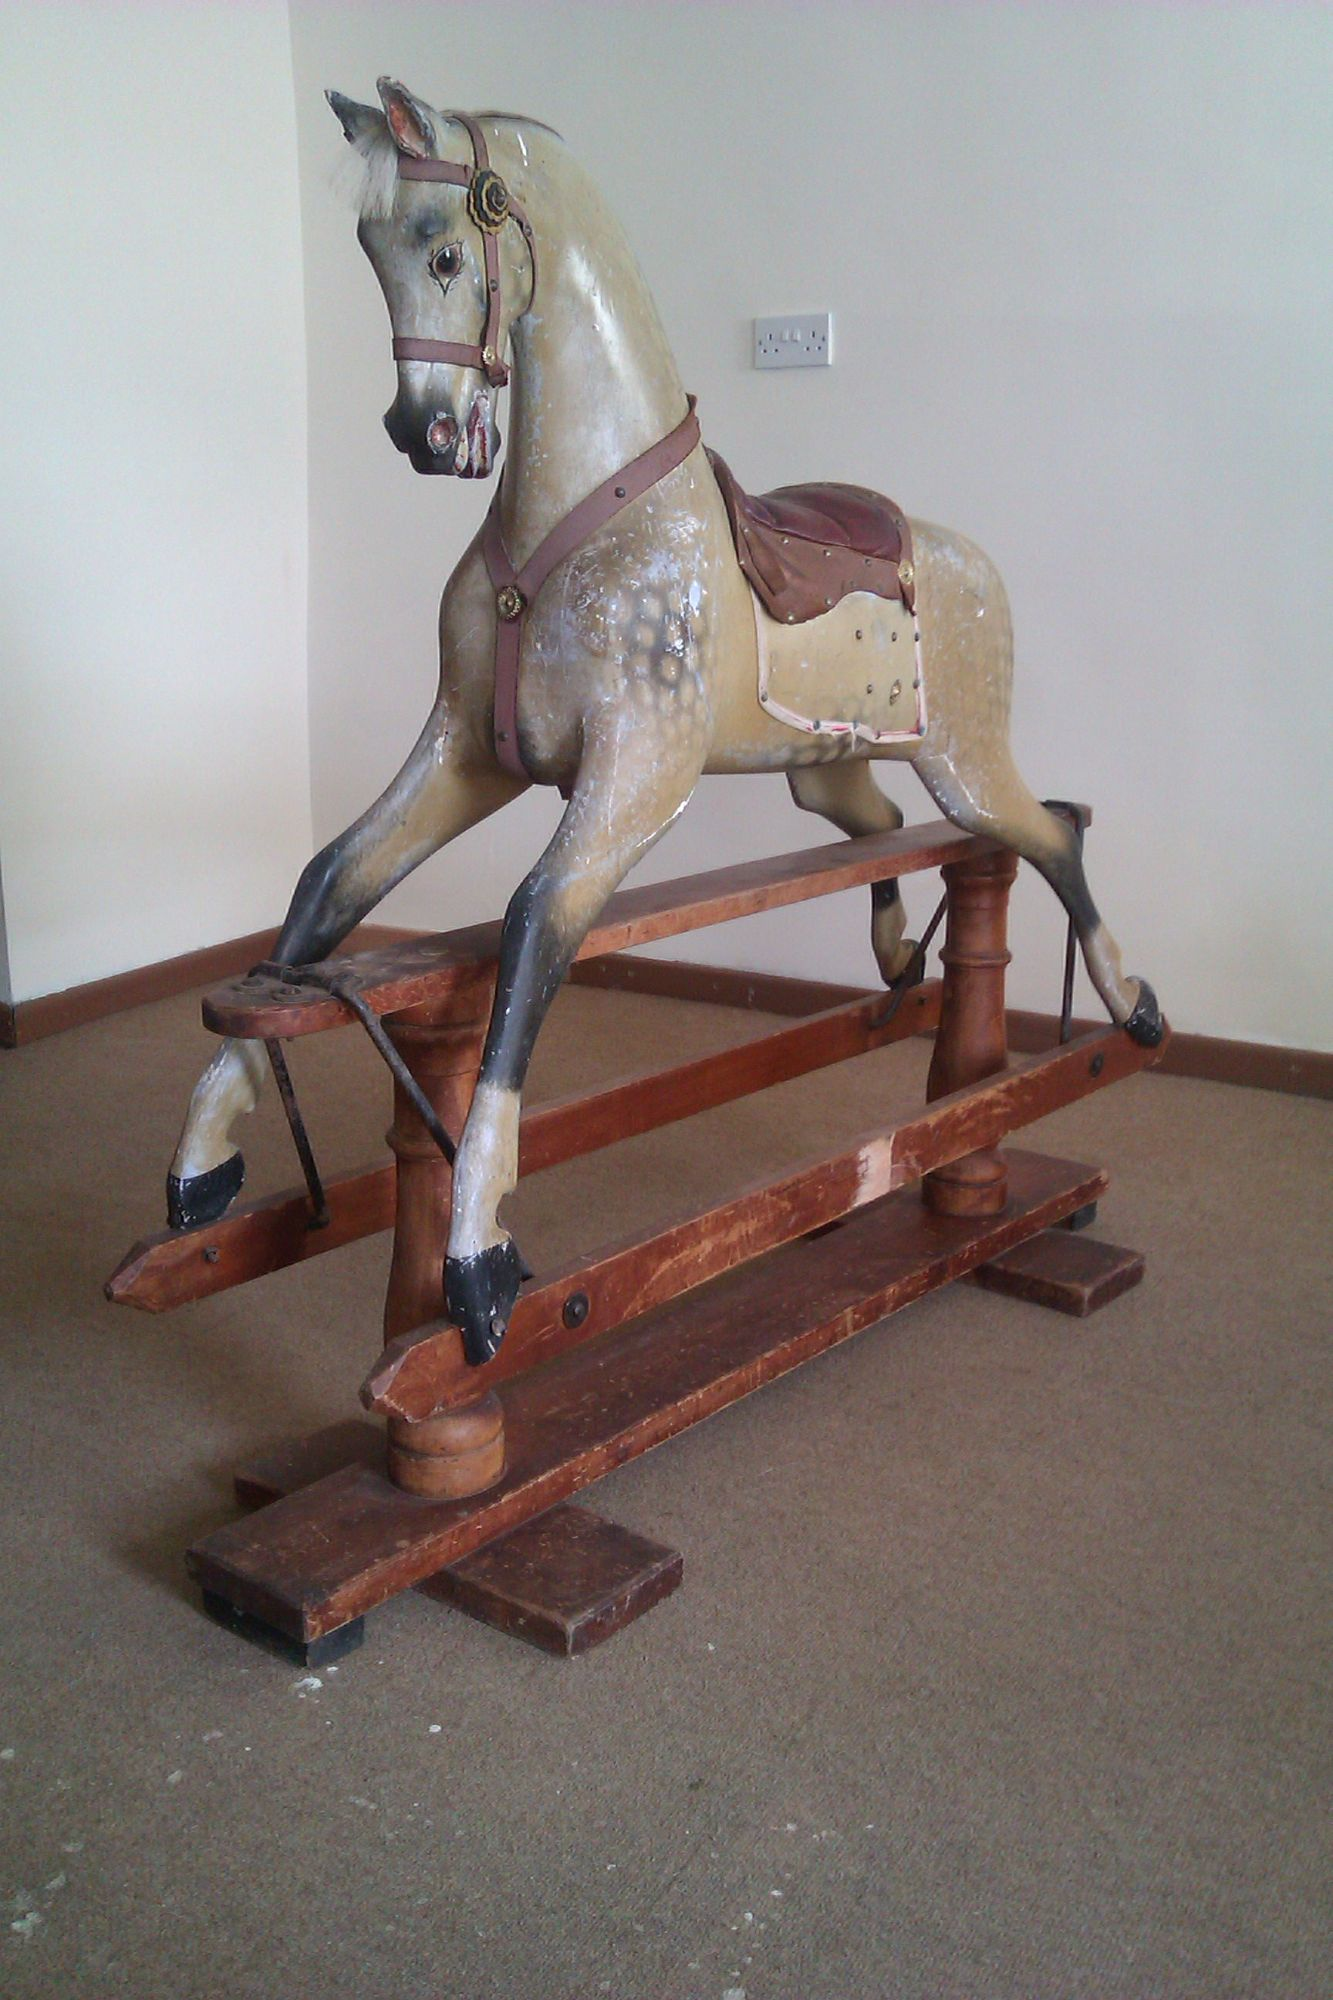 Sold - Antique rocking horse by F H Ayres plain carved in unrestored condition for restoration.